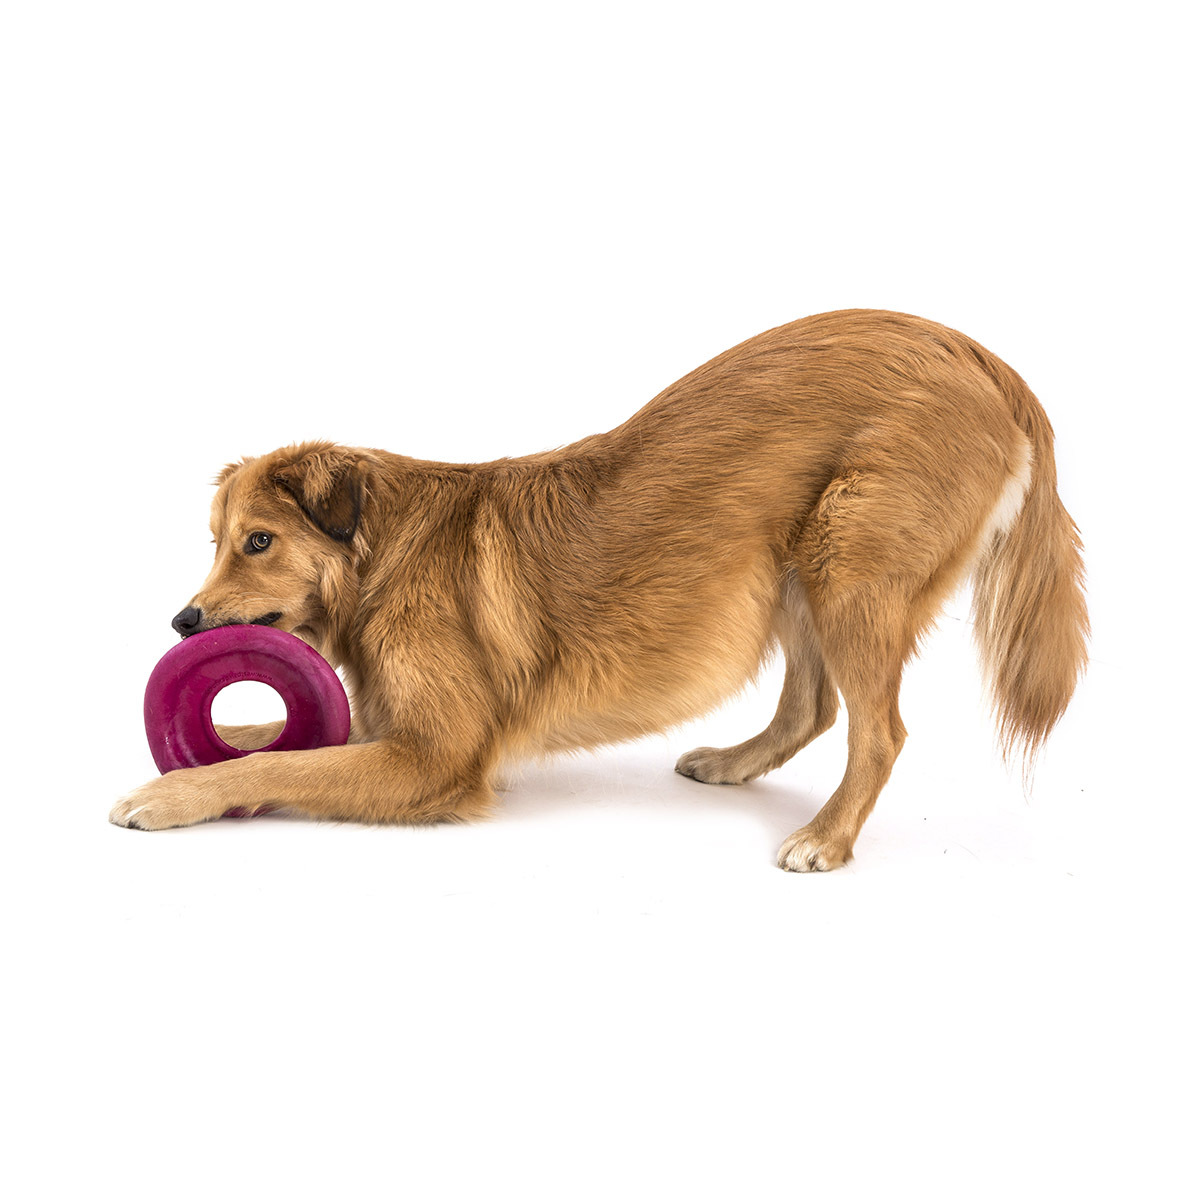 West Paw Dash Zogoflex Textured Fetch Flying Disk Dog Toy  image 9